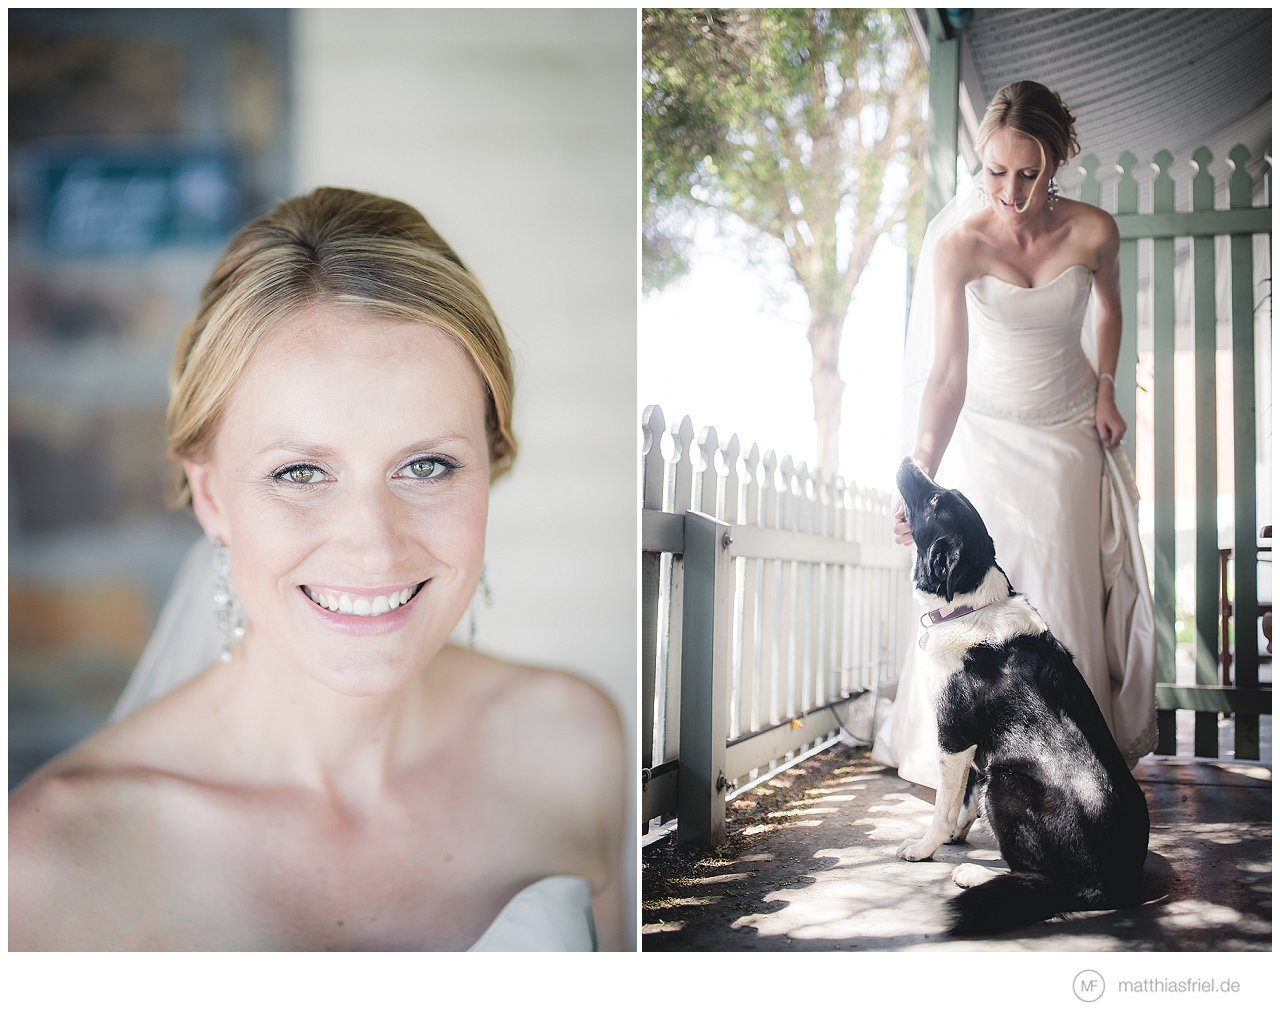 wedding-australia-adelaide-melita-jimmy-matthias-friel_0015